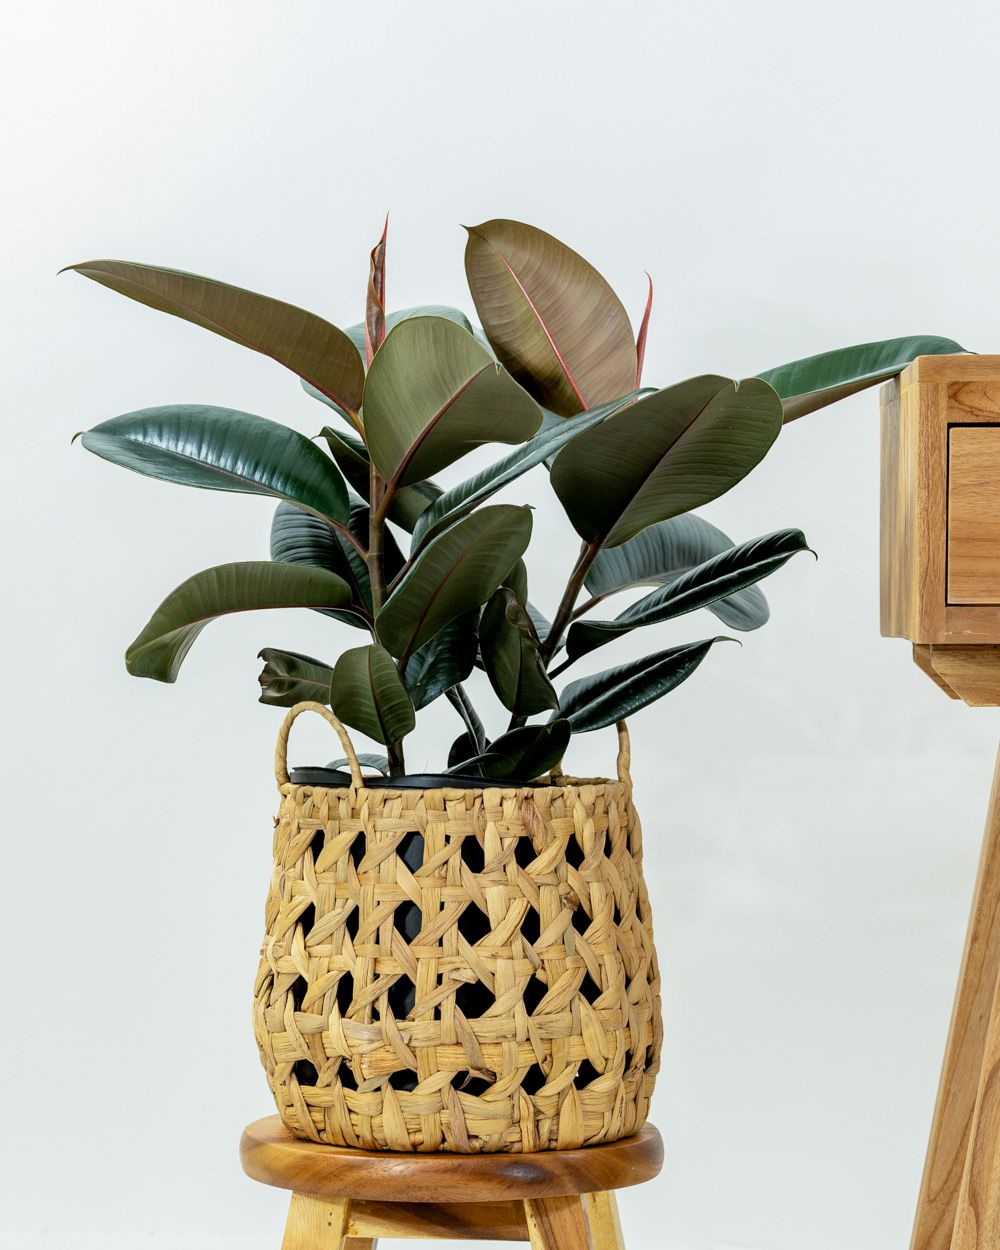 Medium rubber plant in a boho basket on a wood stool